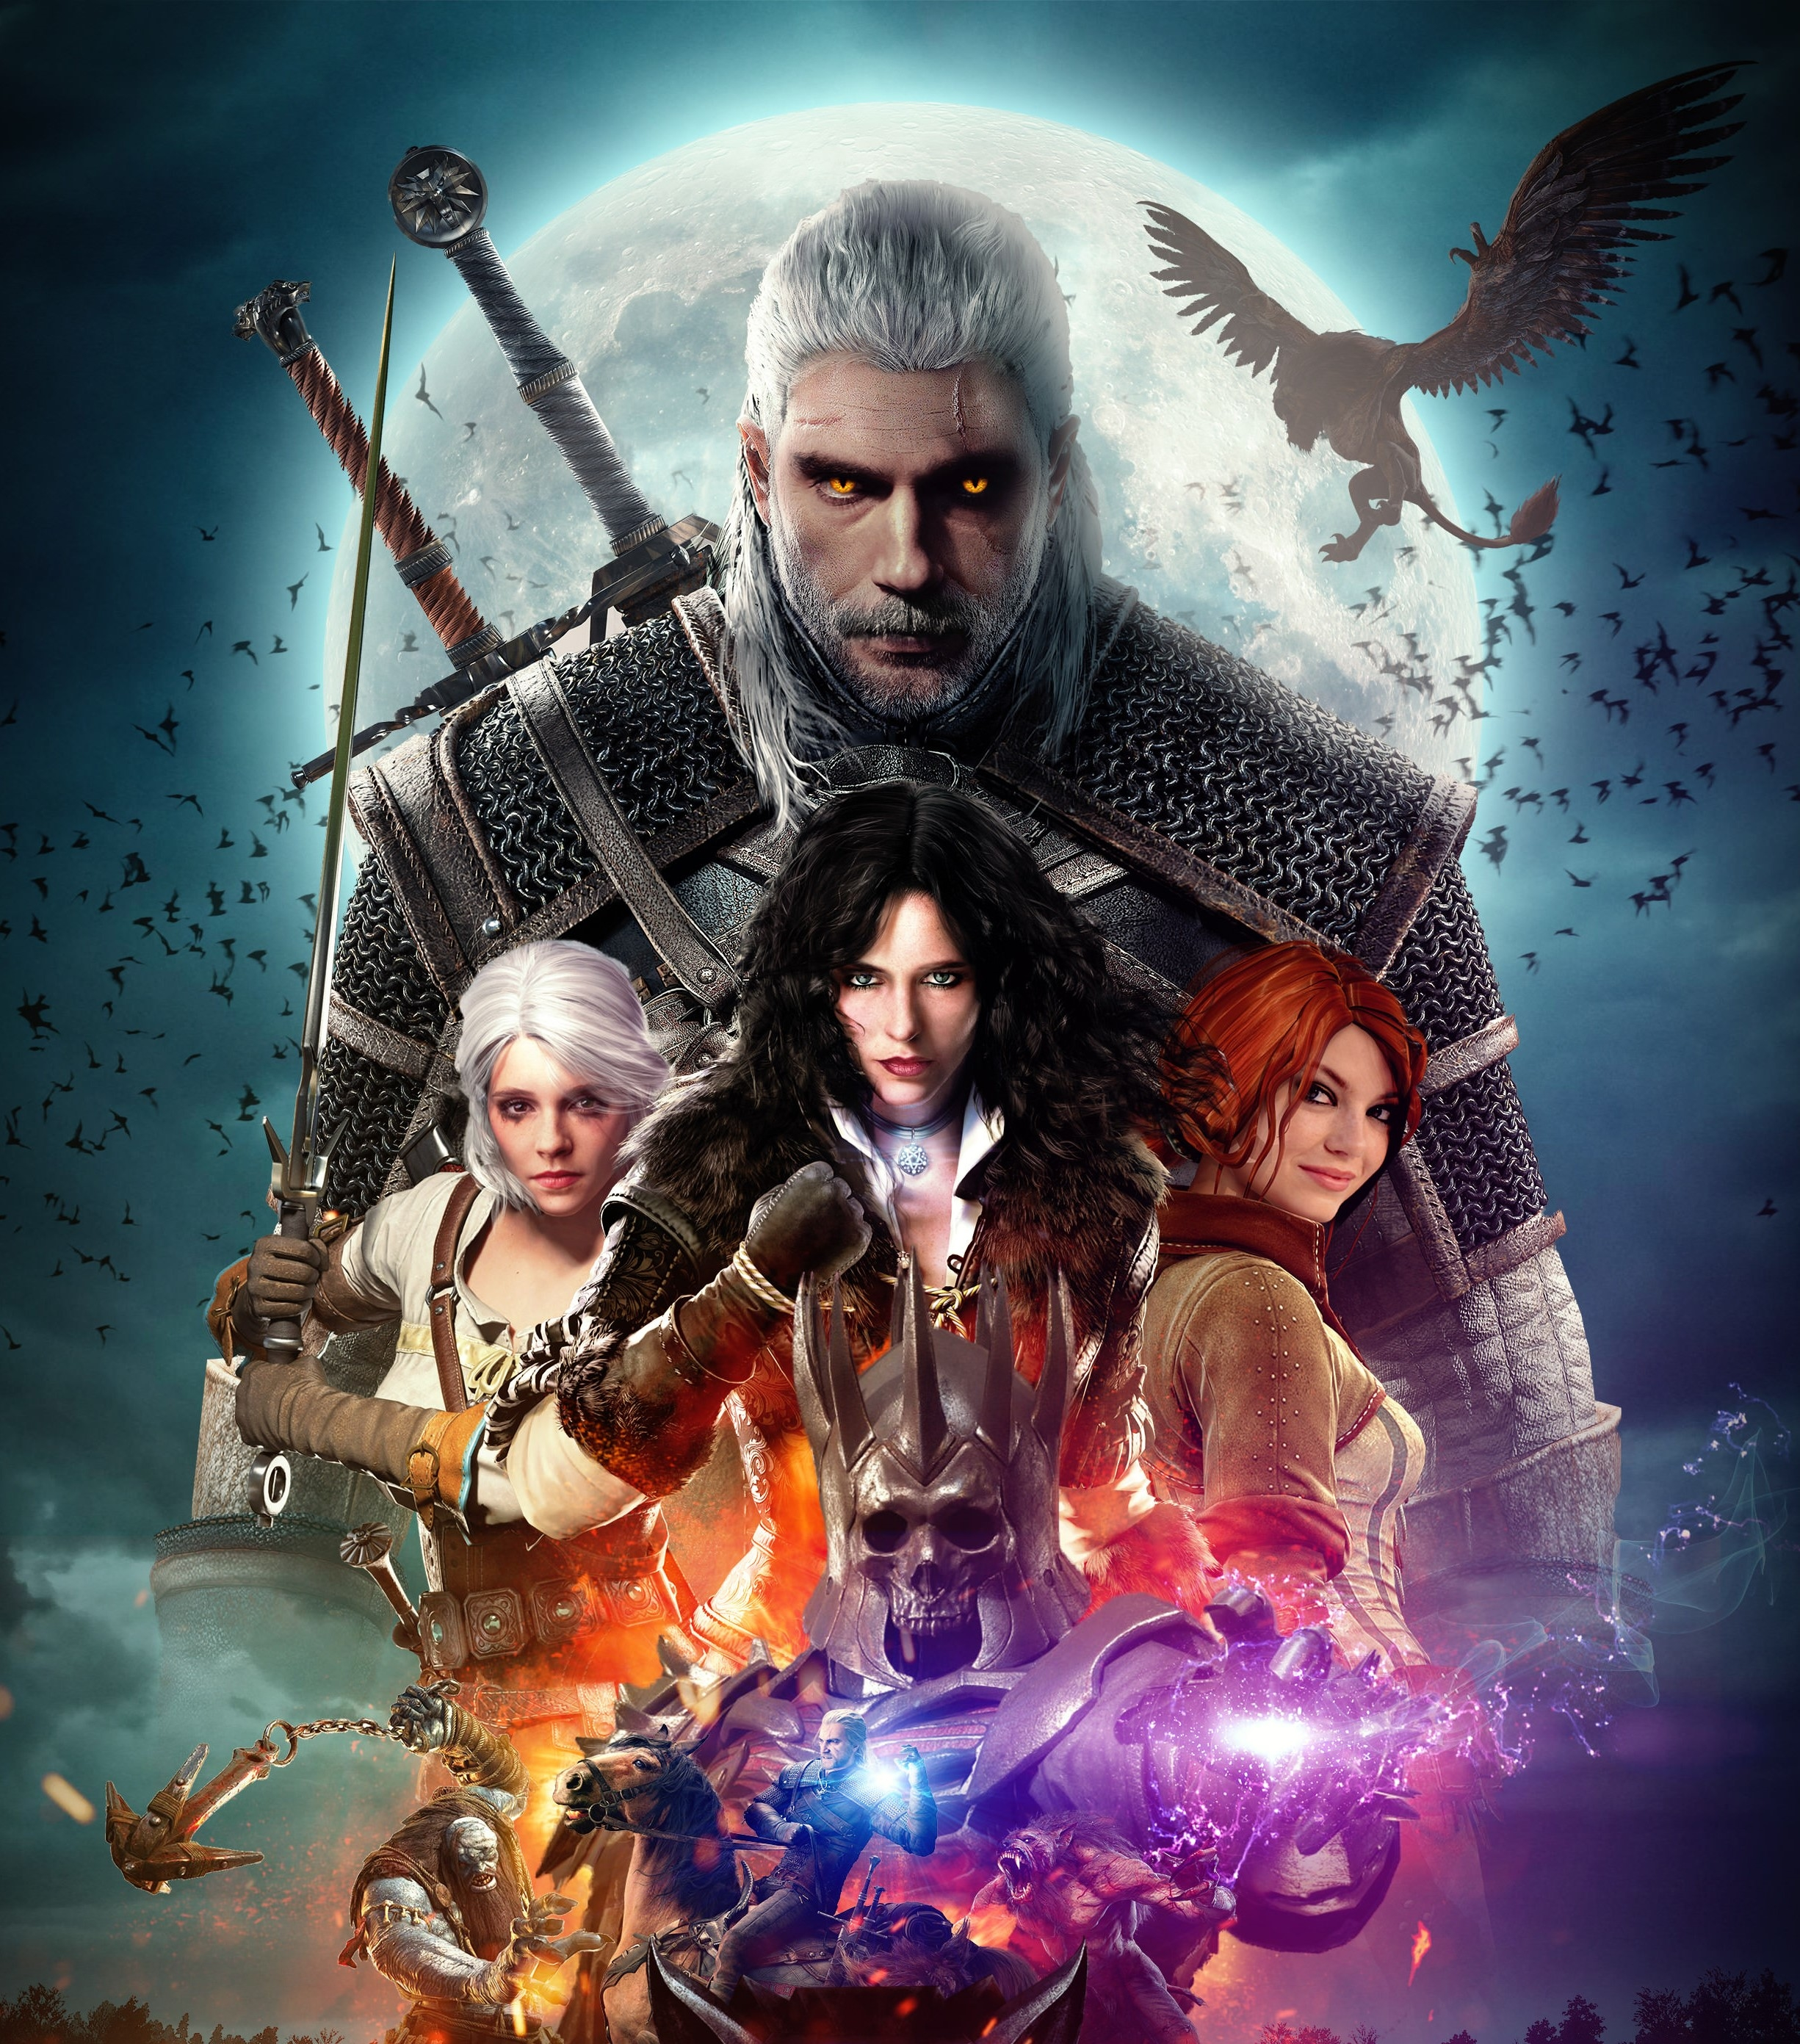 The Witcher 2019 Wallpaper HD Artist 4K Wallpapers Images 2451x2783